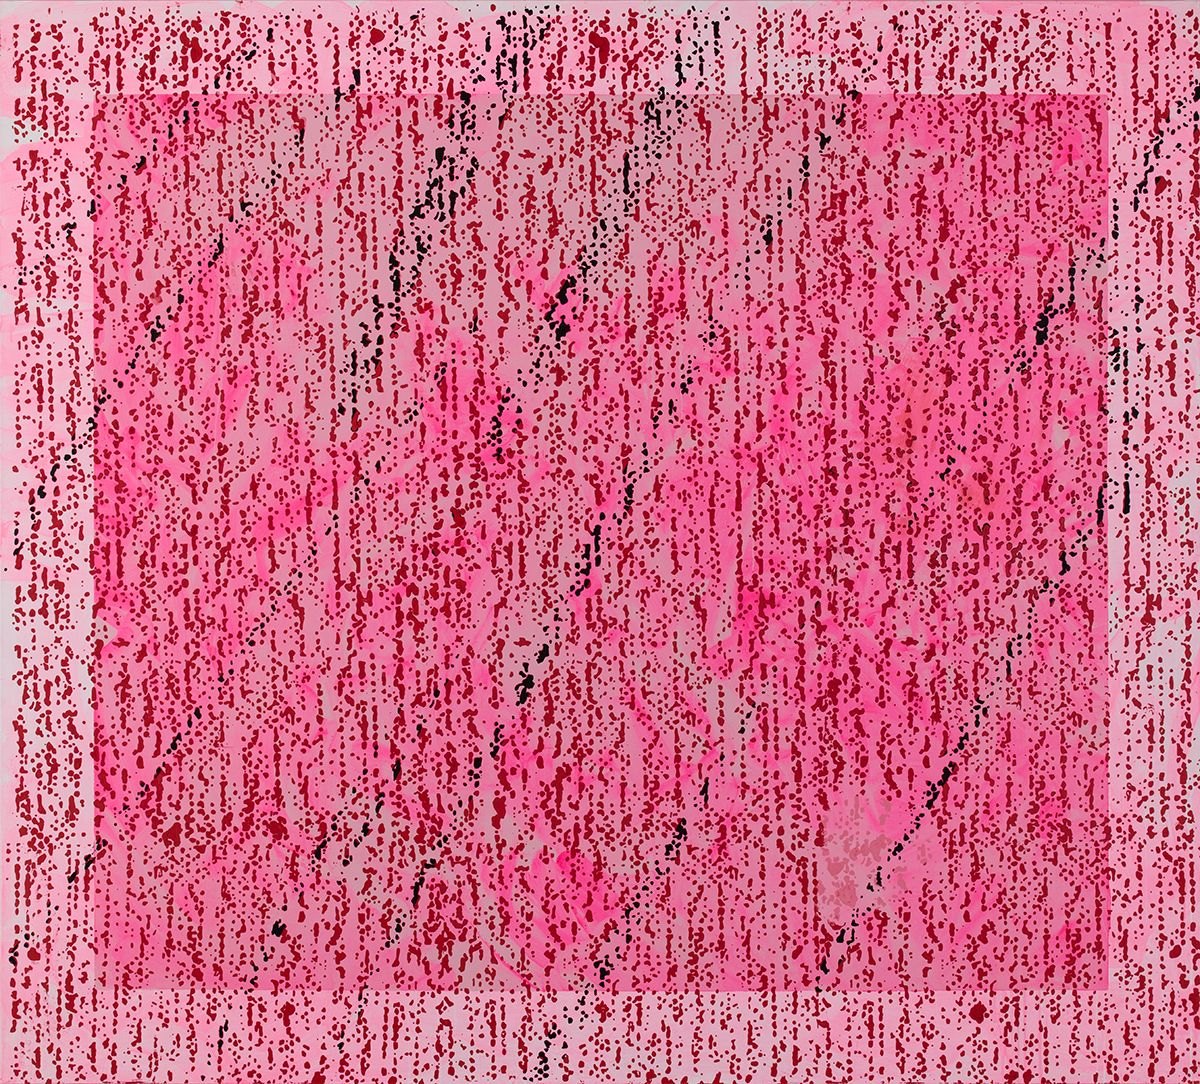 â–¢ , 2015, Oil and enamel on linen